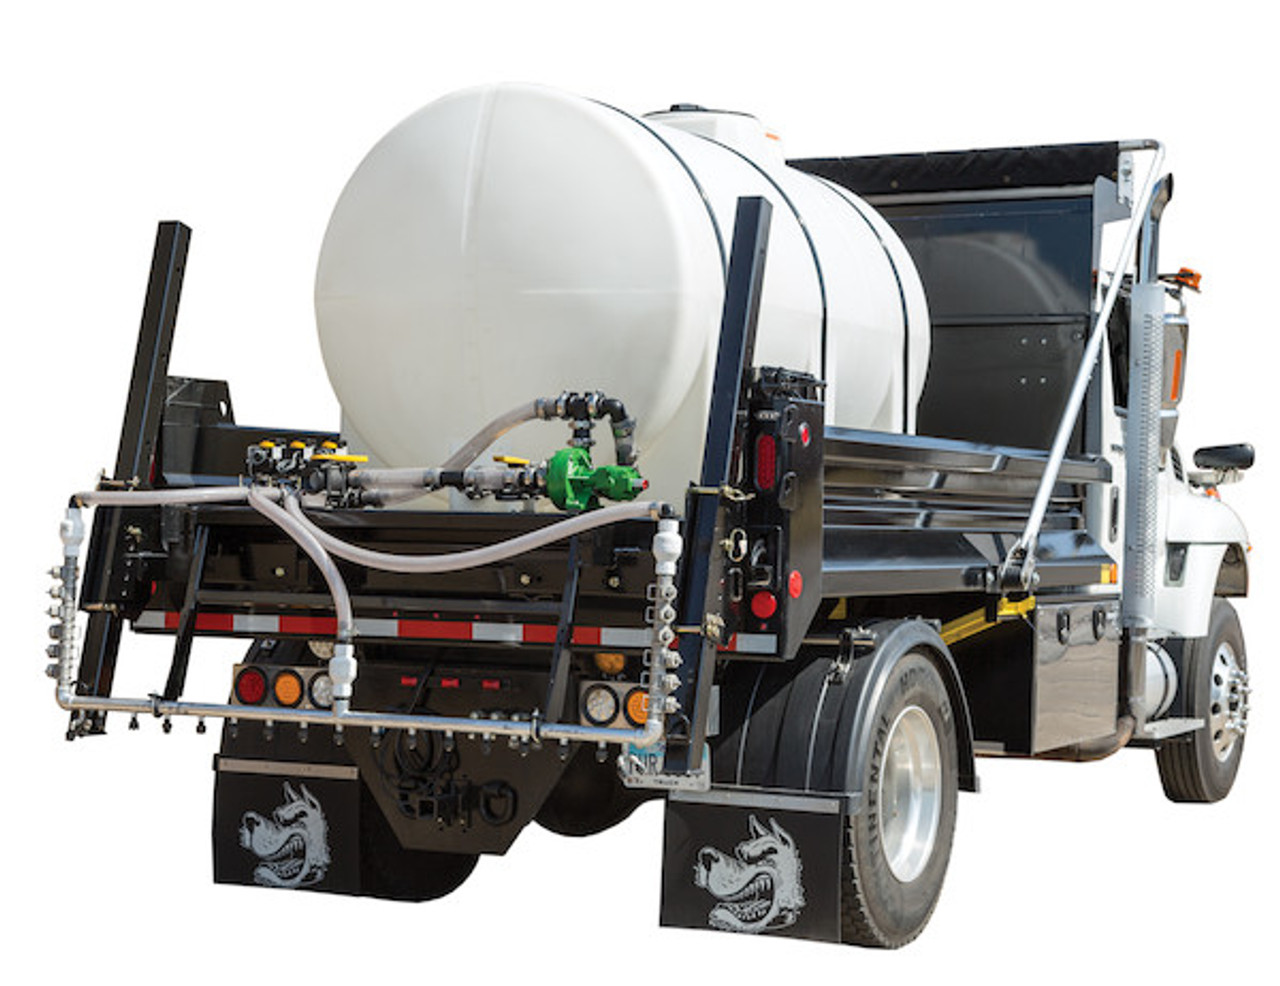 6192716 BUYERS SALTDOGG 1065 Gallon Hydraulic Anti-Ice System With Three-Lane Spray Bar And Automatic Application Rate Control